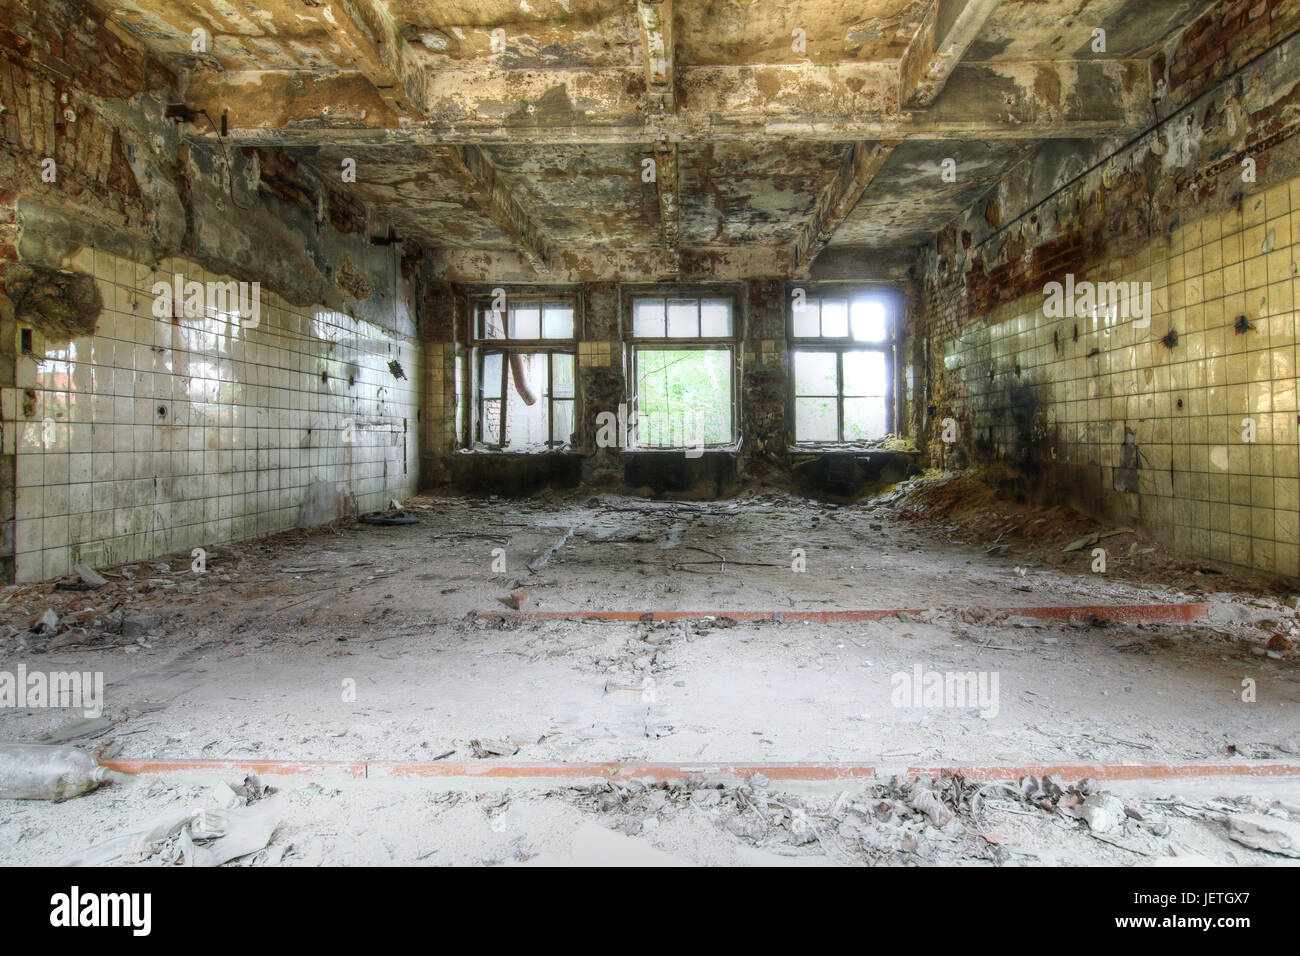 Ruins - broken and devasted interior of industry building - Stock Image